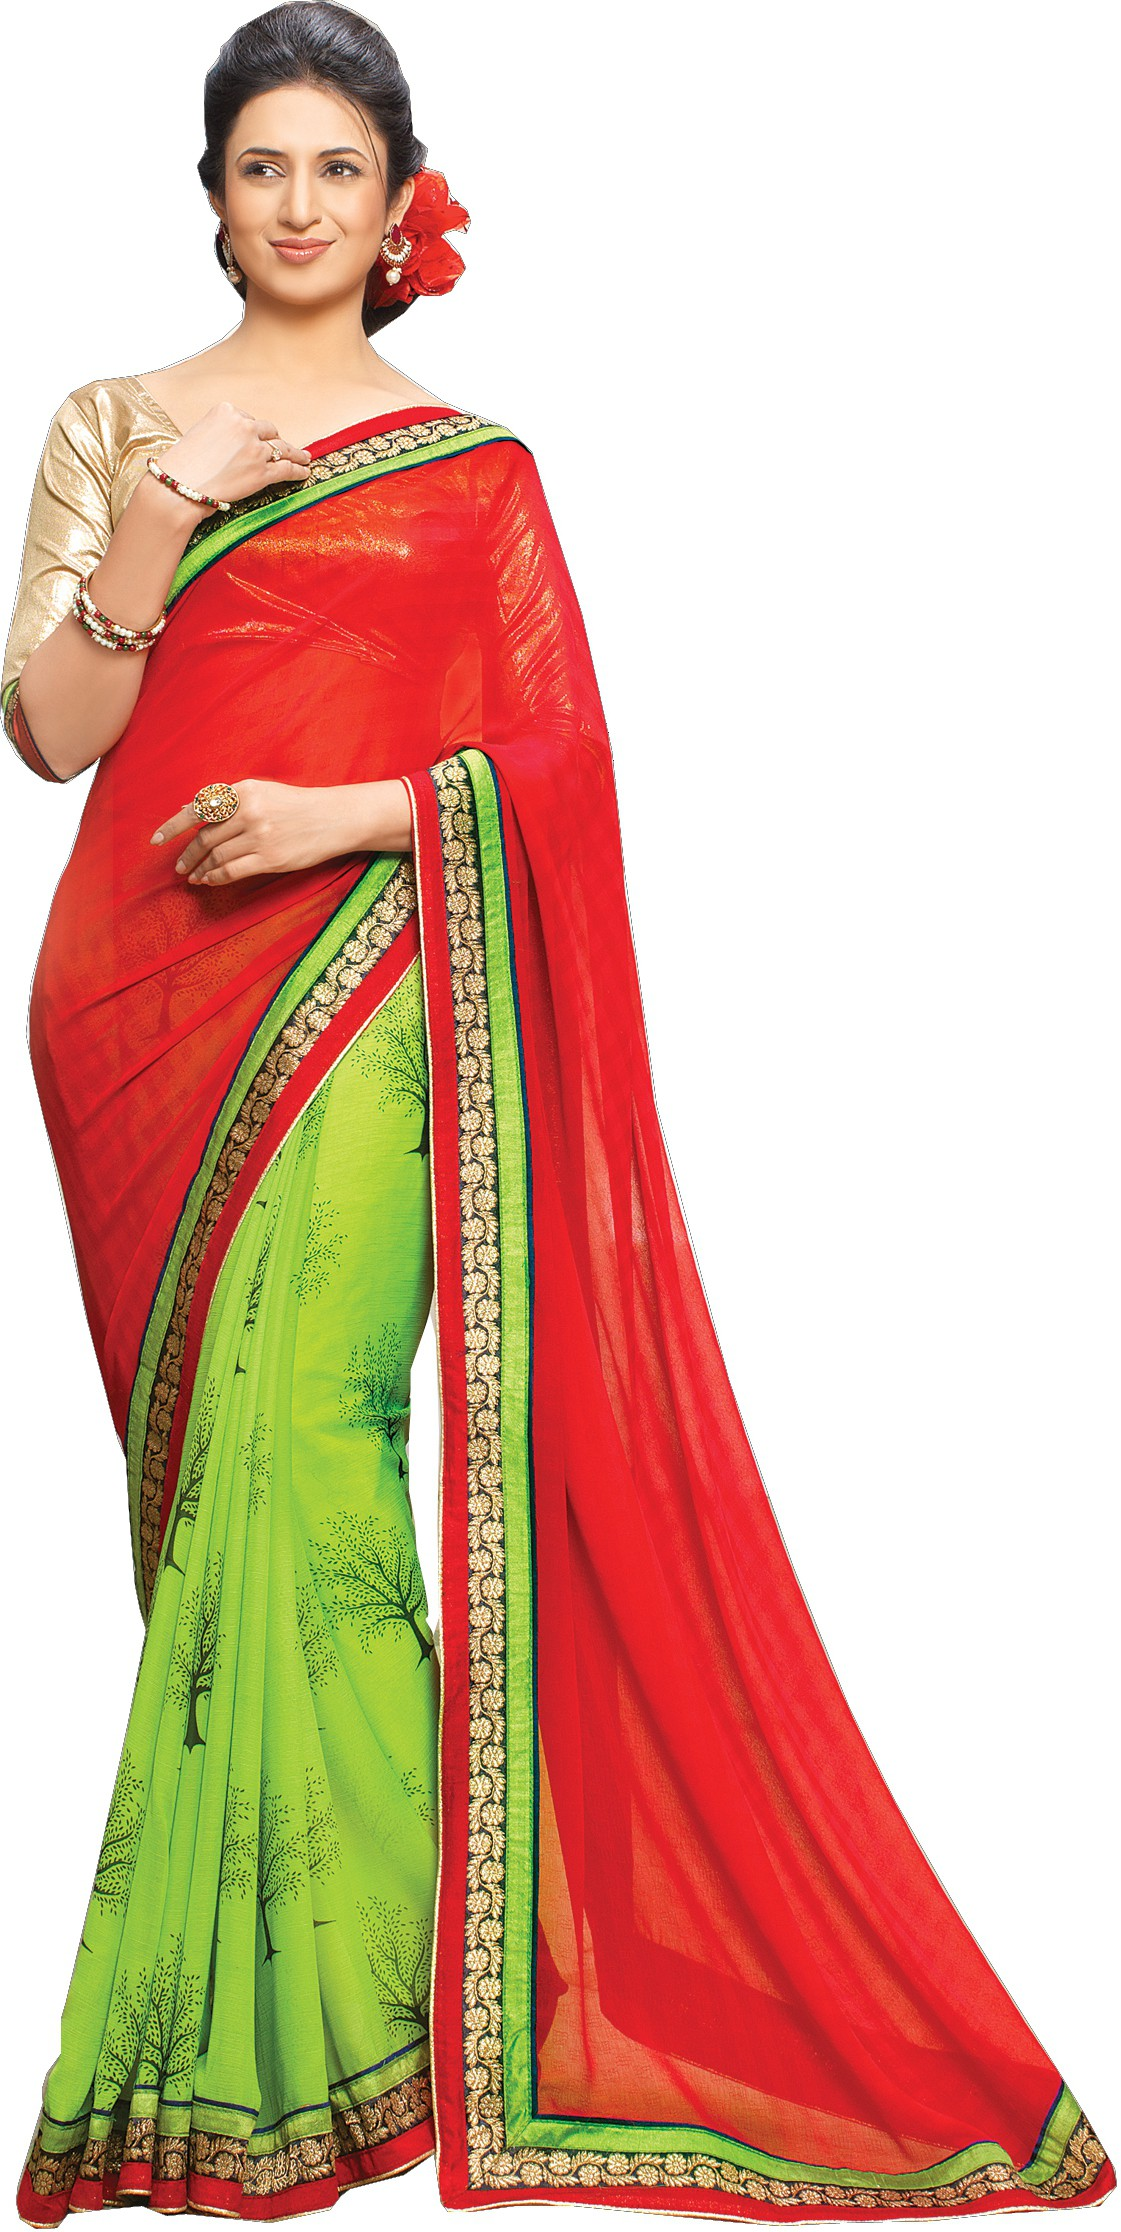 Indianbeauty Self Design Bollywood Georgette Sari(Red, Green)